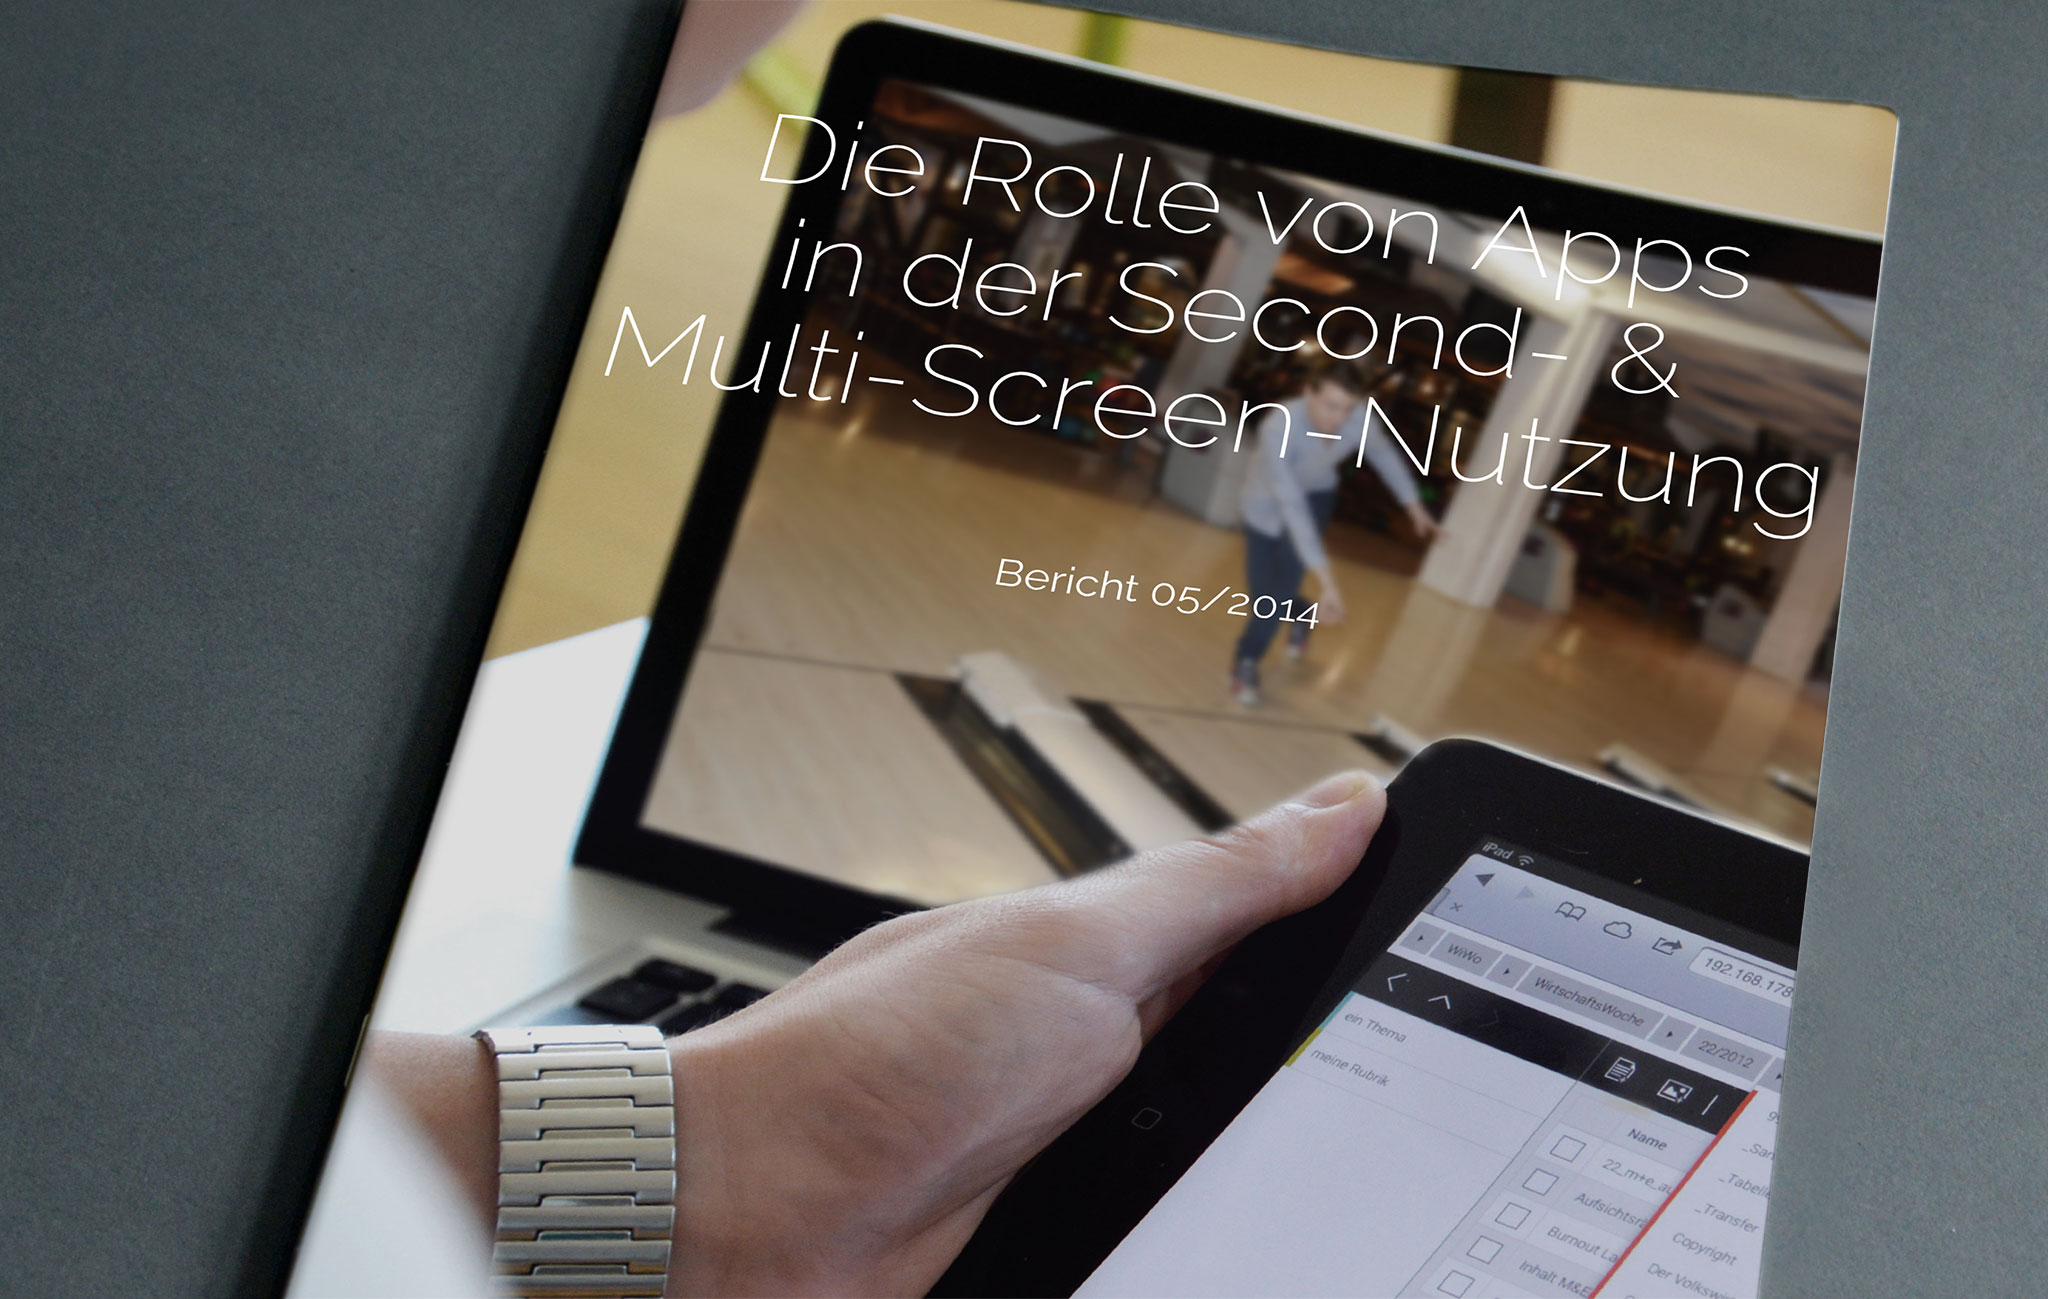 Publikation Second-Multi-Screen-Nutzung